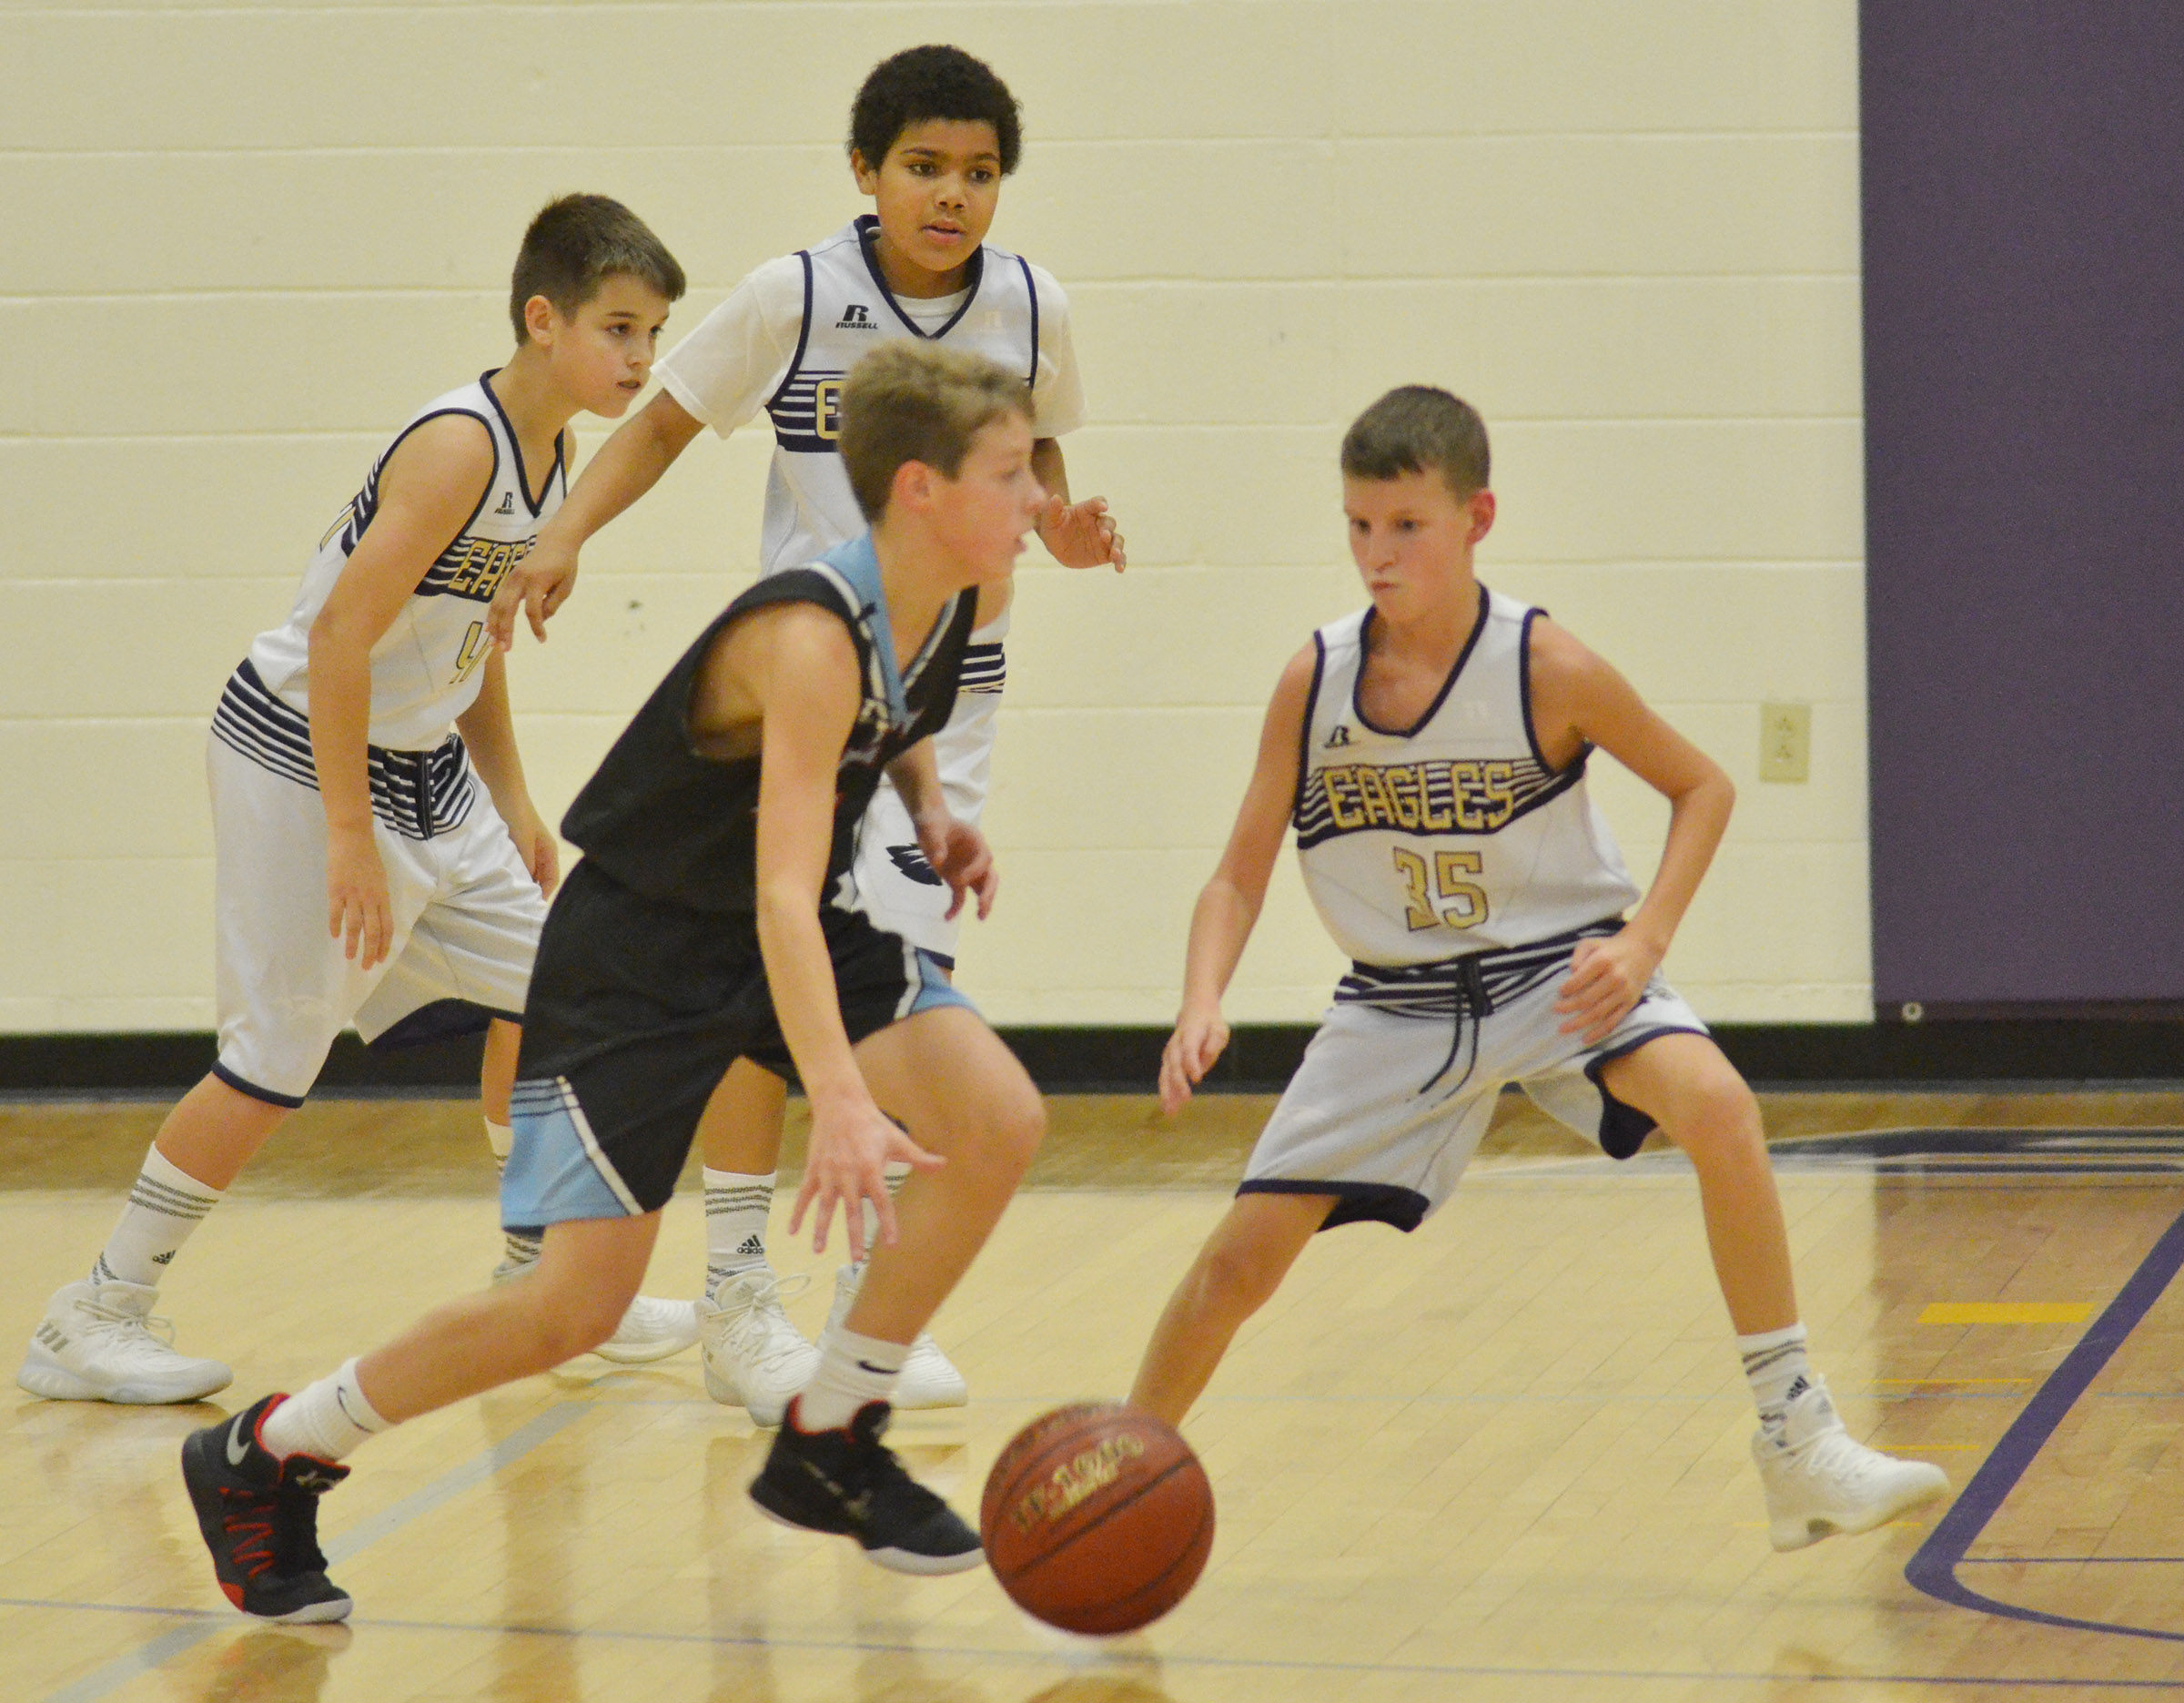 CMS sixth-graders Kaden Bloyd and Tashaun Hart, at left, and Campbellsville Elementary School fifth-grader Rowan Petett play defense.